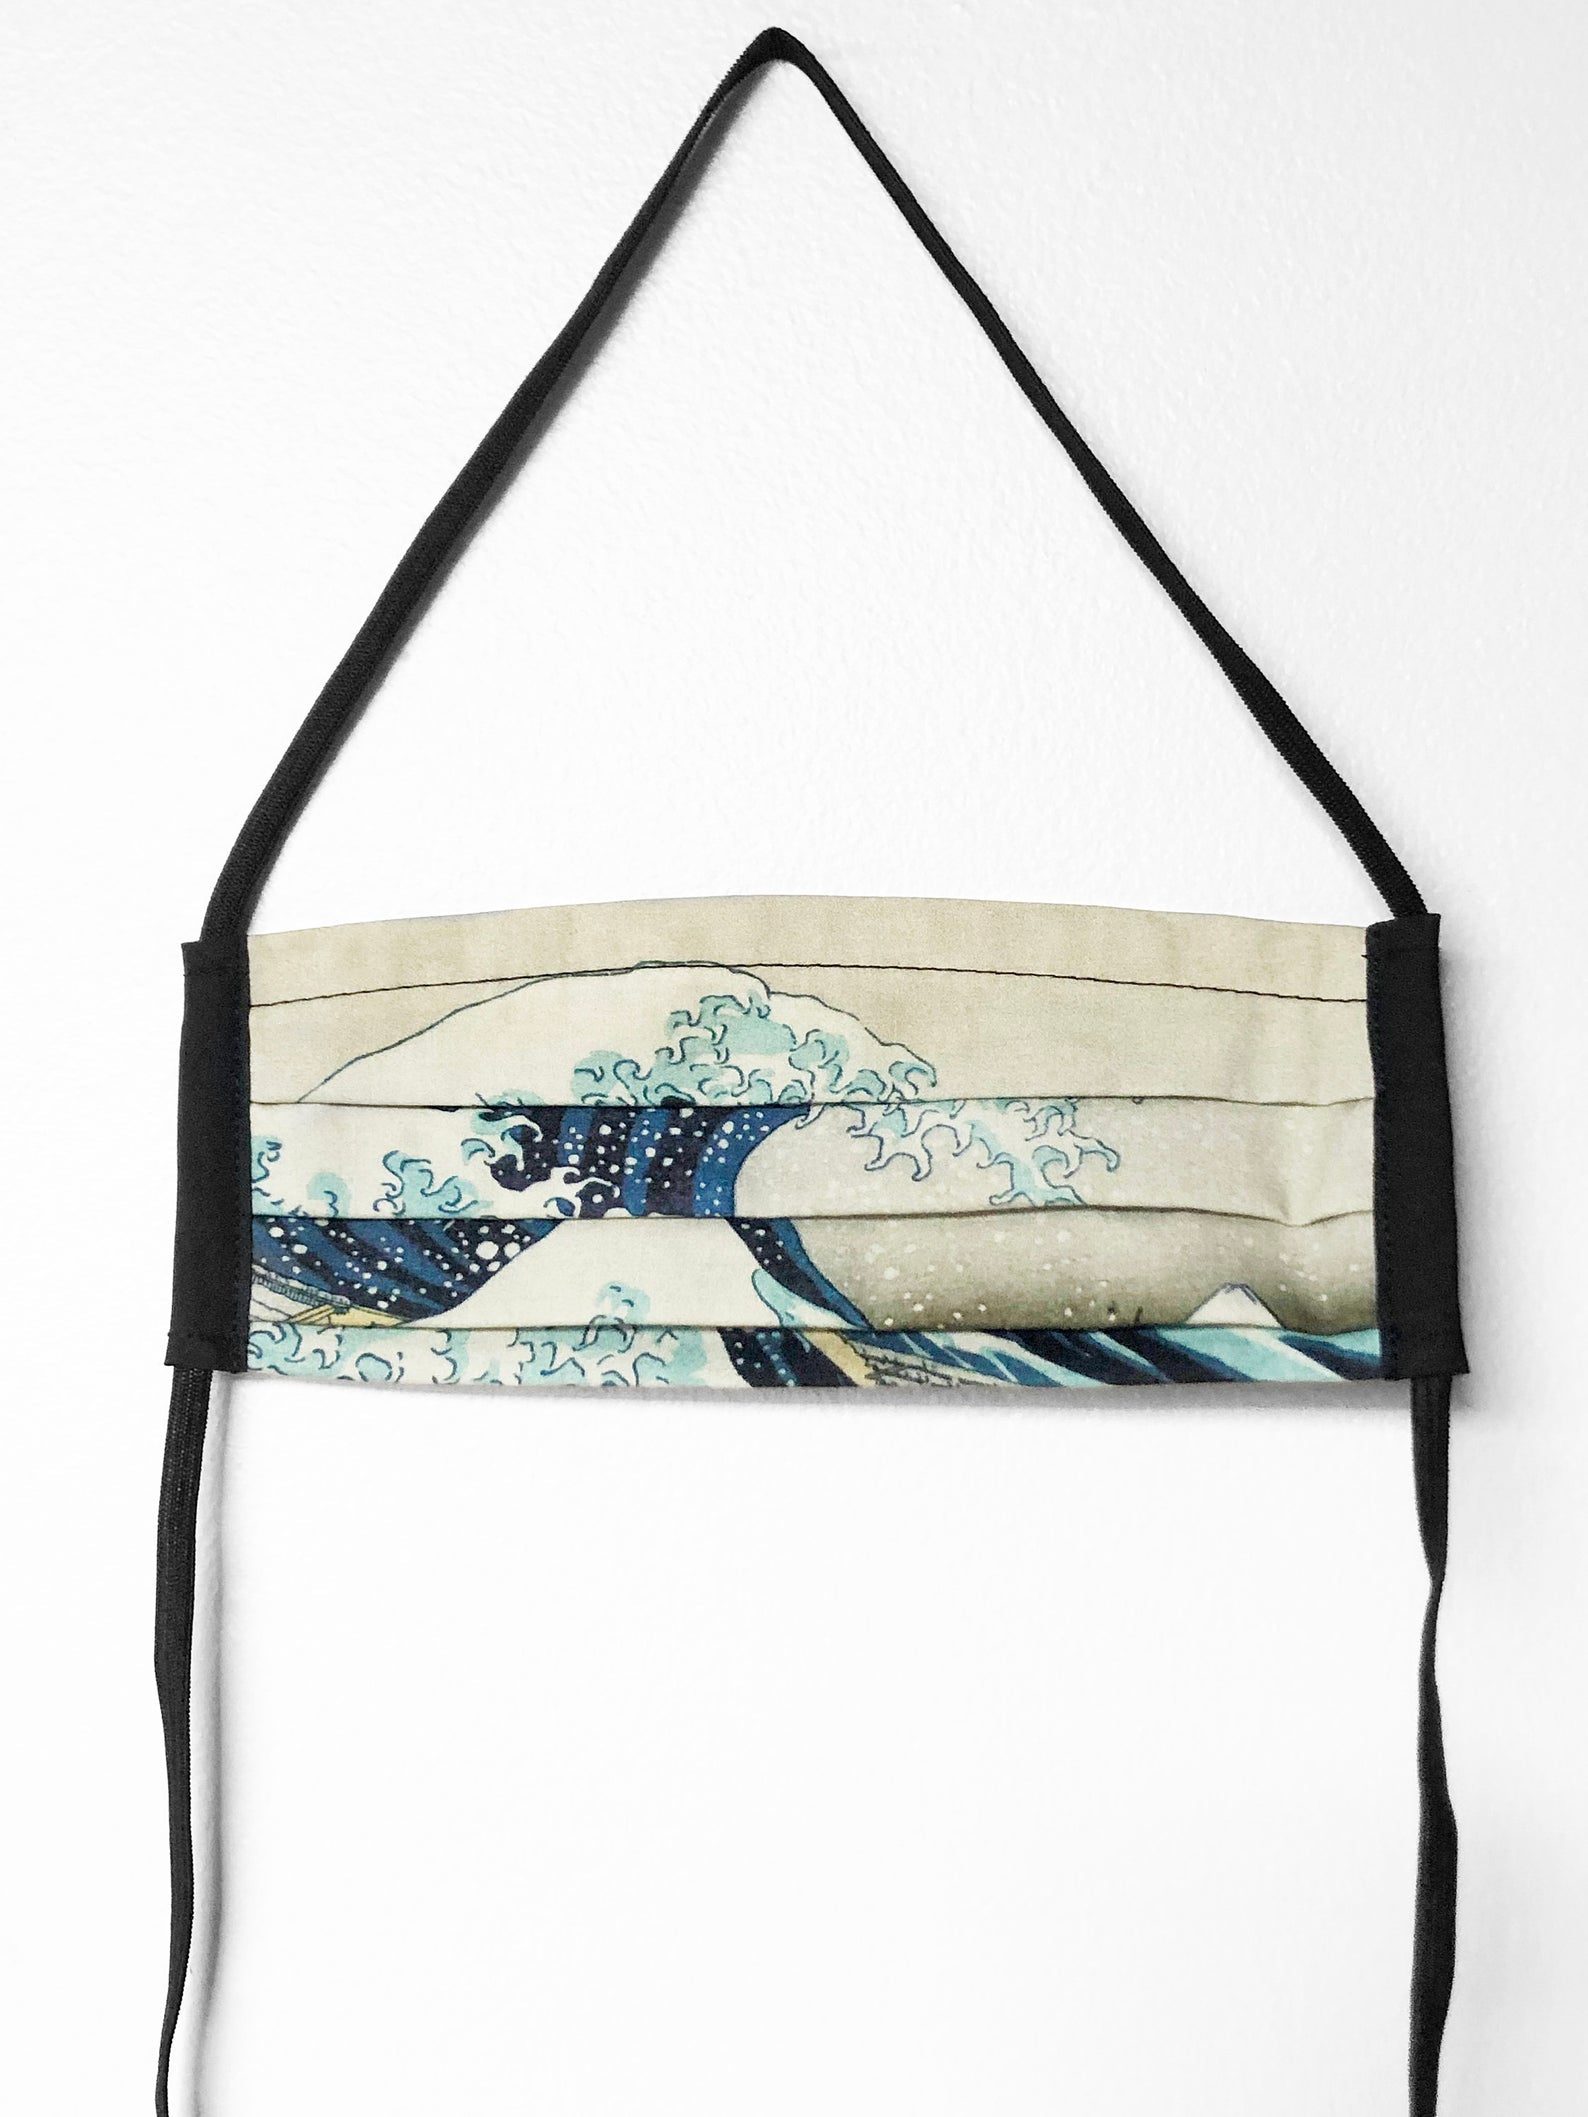 the great wave off kanagawa - pleated face mask // face covering - 2 cotton layers - reusable & washable - katsushika hokusai, 1829–32